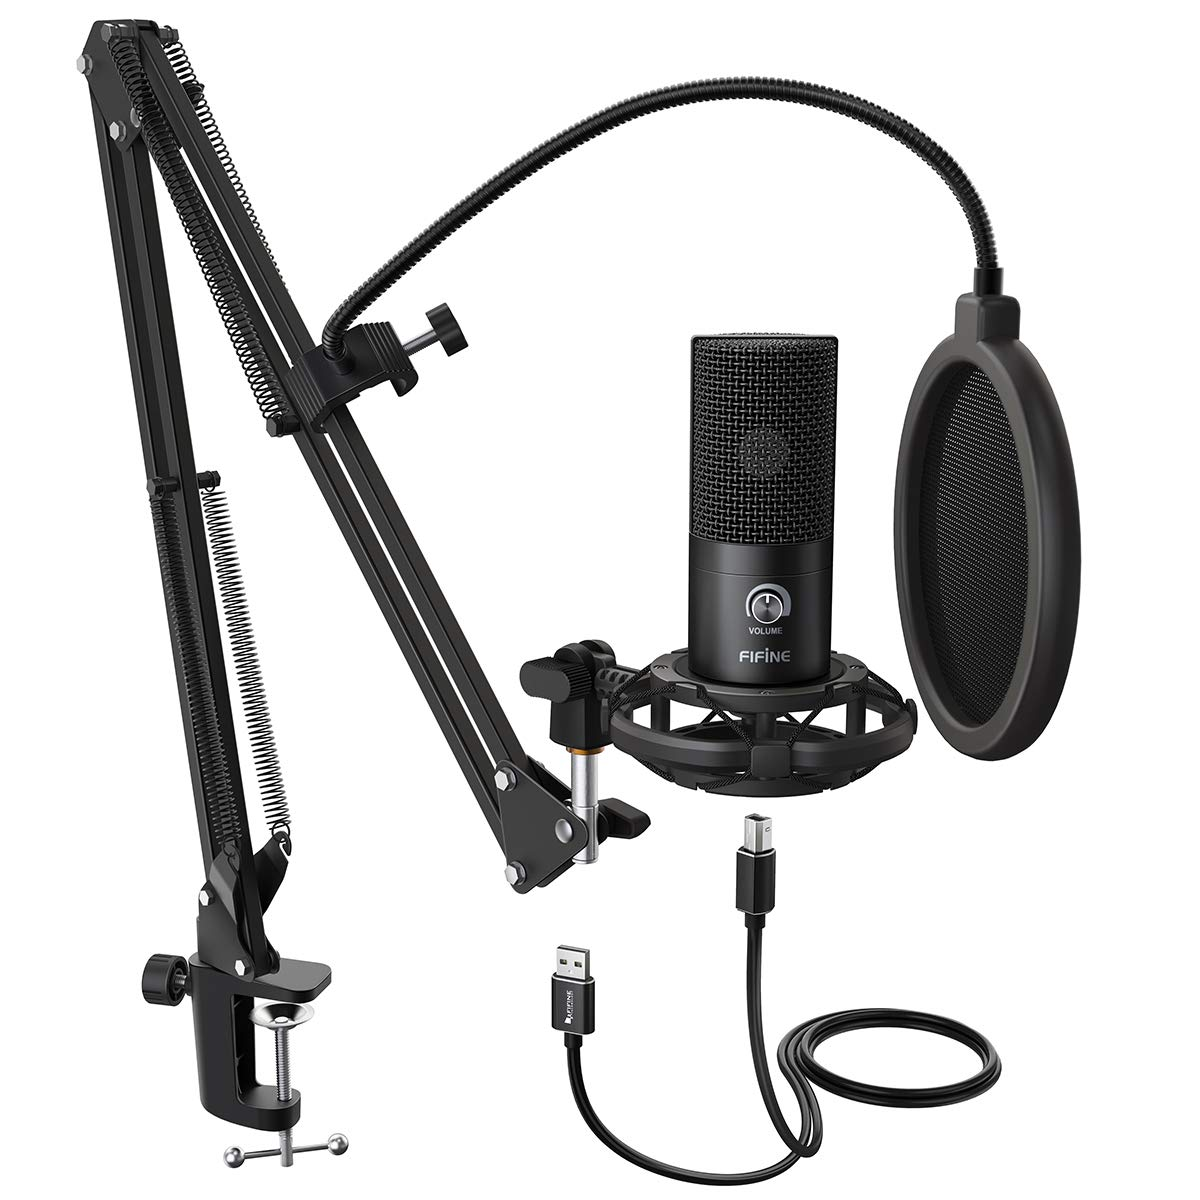 FIFINE Studio Condenser USB Microphone Computer PC Microphone Kit with Adjustable Scissor Arm Stand Shock Mount for Instruments Voice Overs Recording Podcasting YouTube Karaoke Gaming Streaming-T669